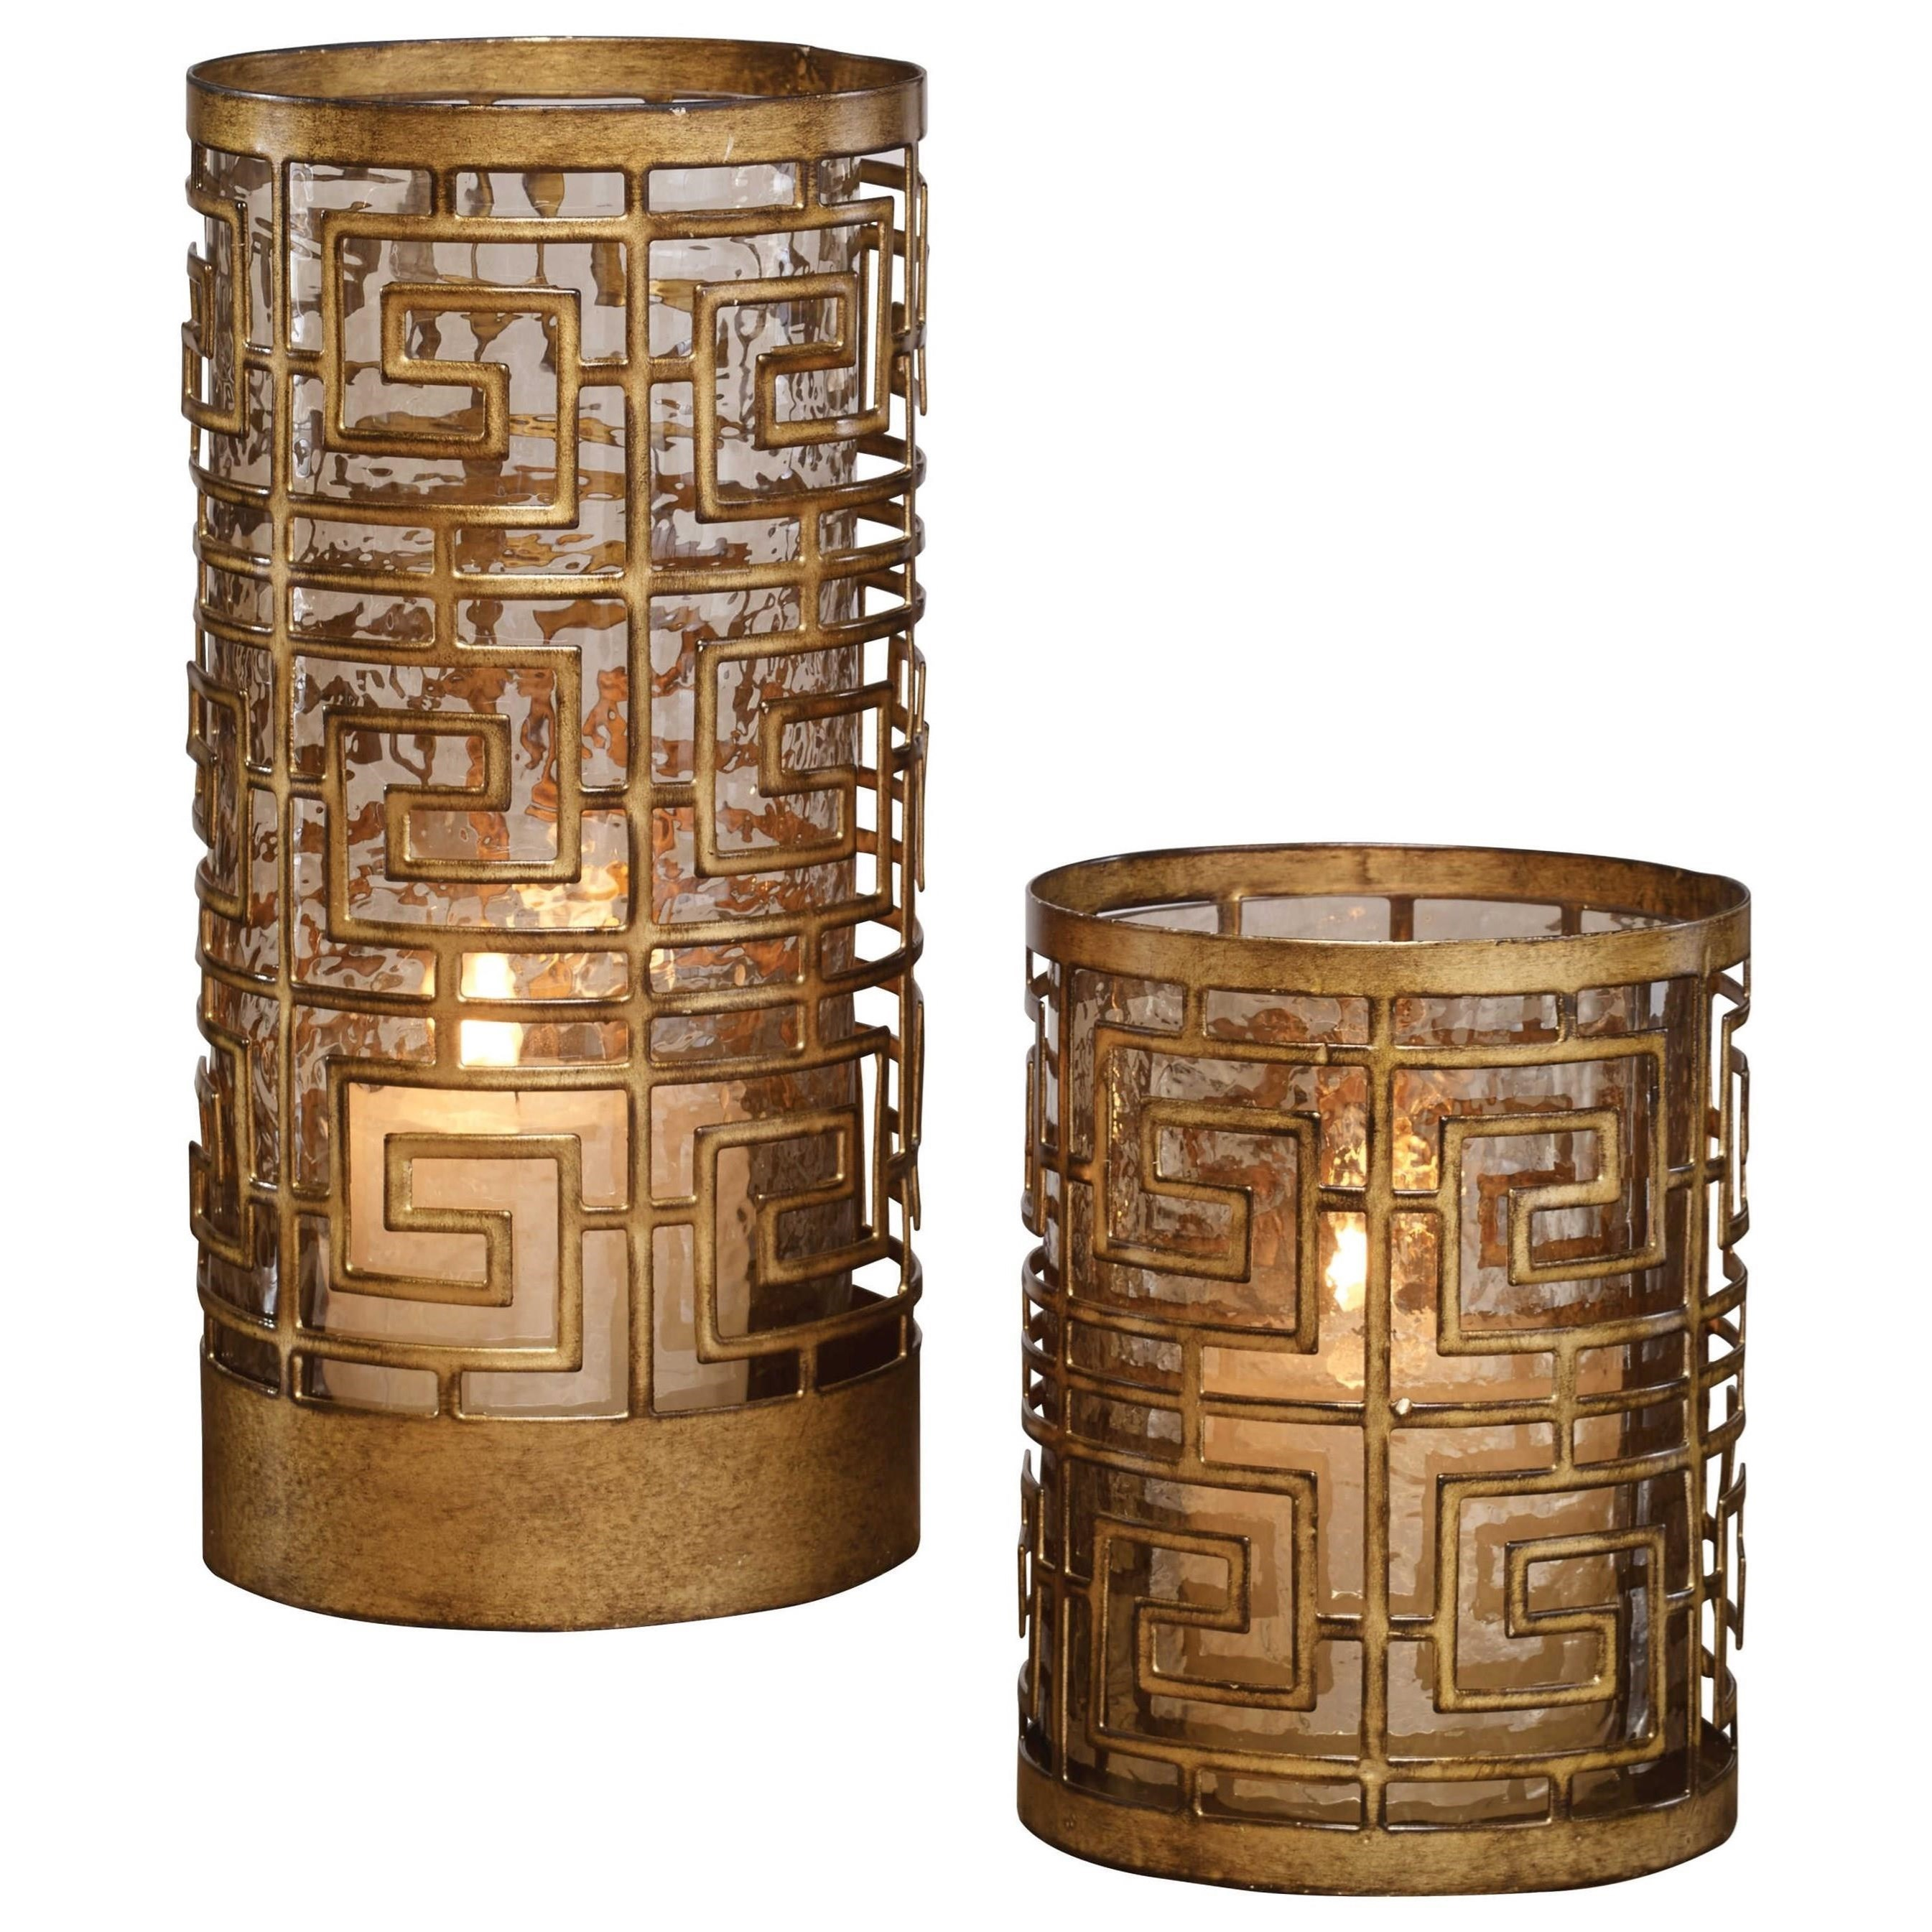 Accessories - Candle Holders Ruhi Hurricane Candleholders, S/2 by Uttermost at Suburban Furniture